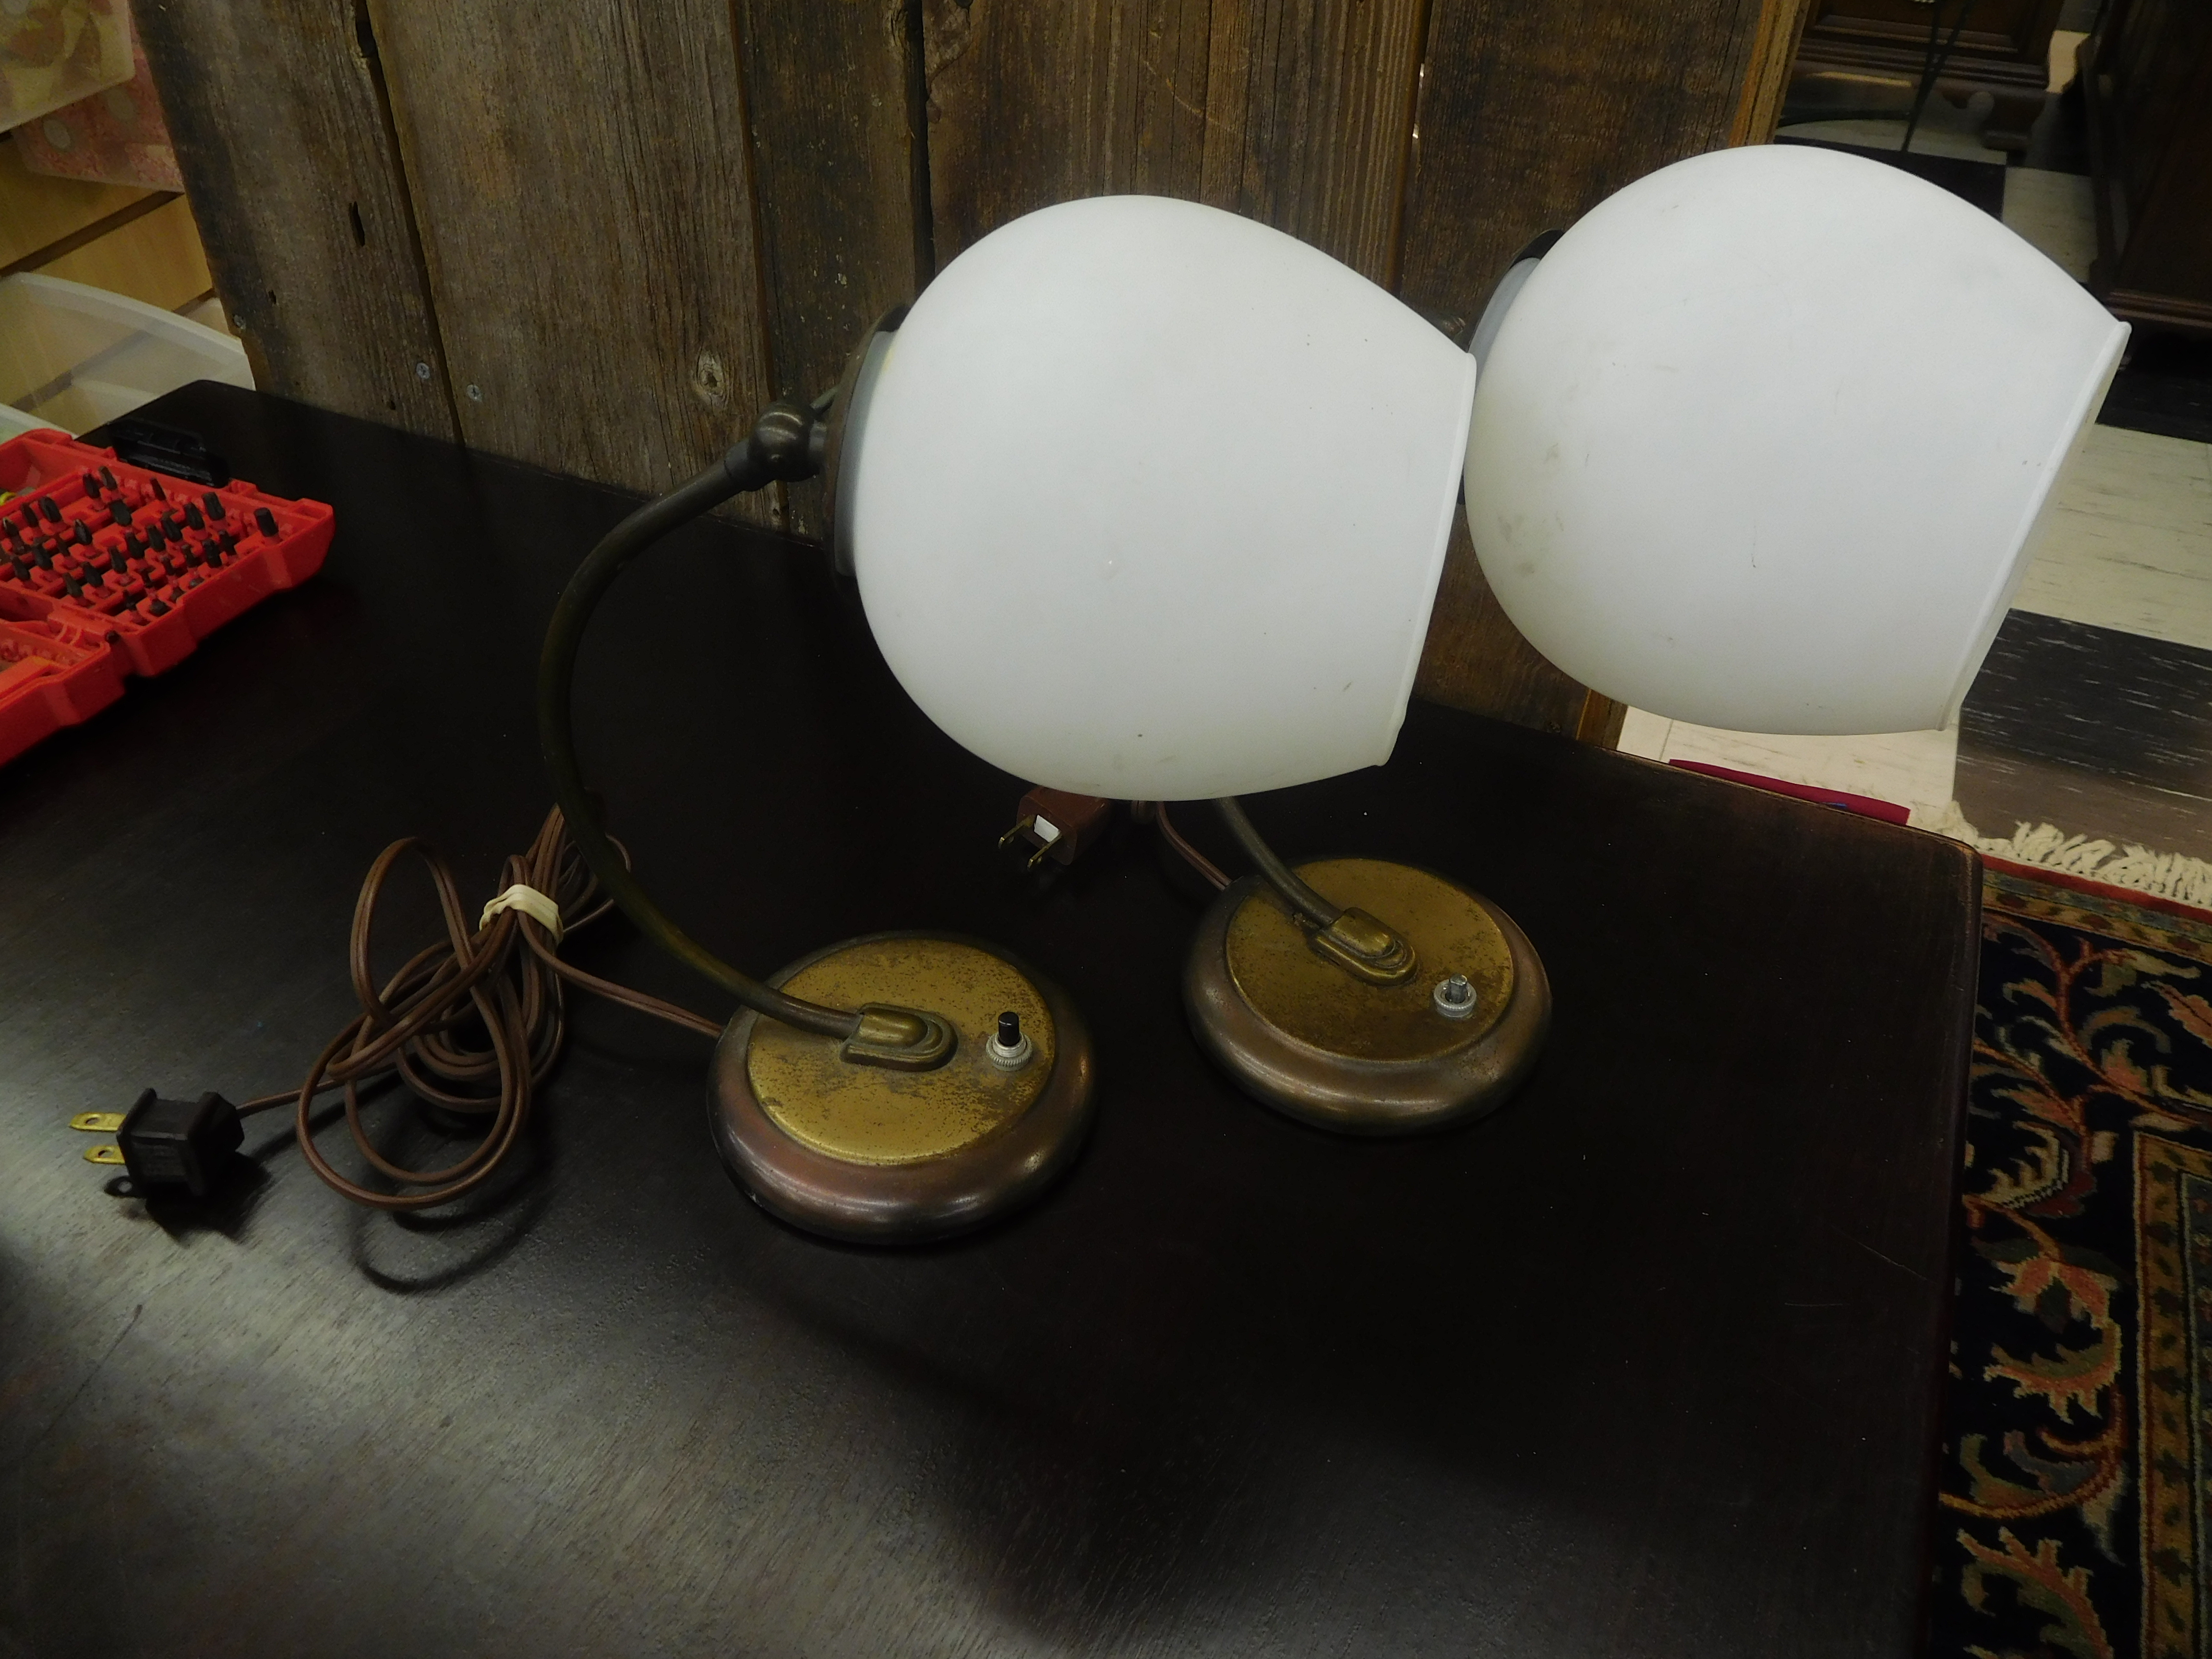 Vintage Gooseneck Table Lamp with Metal Base and White Globe